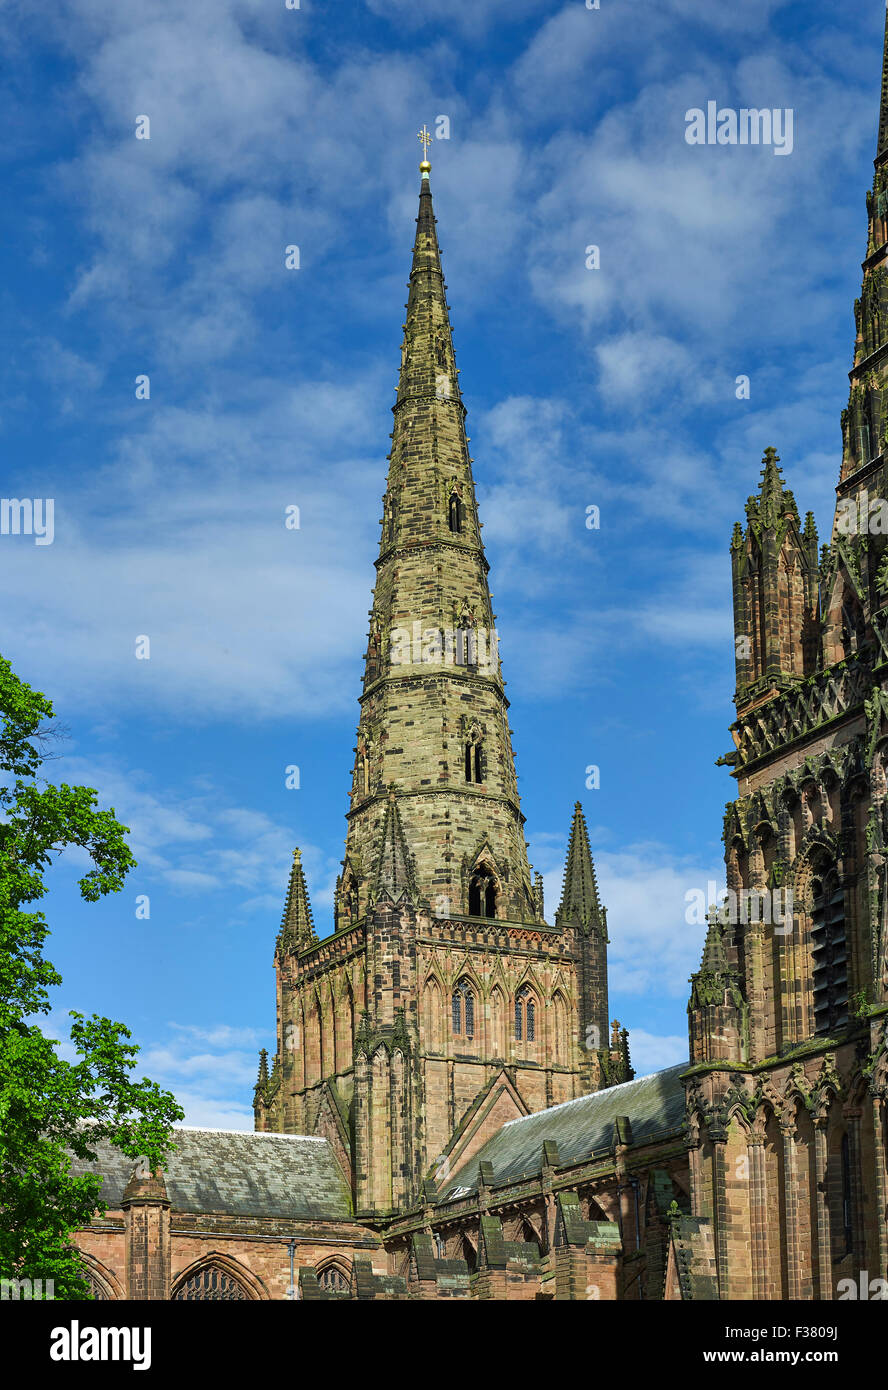 Lichfield Cathedral, Great Spire - Stock Image